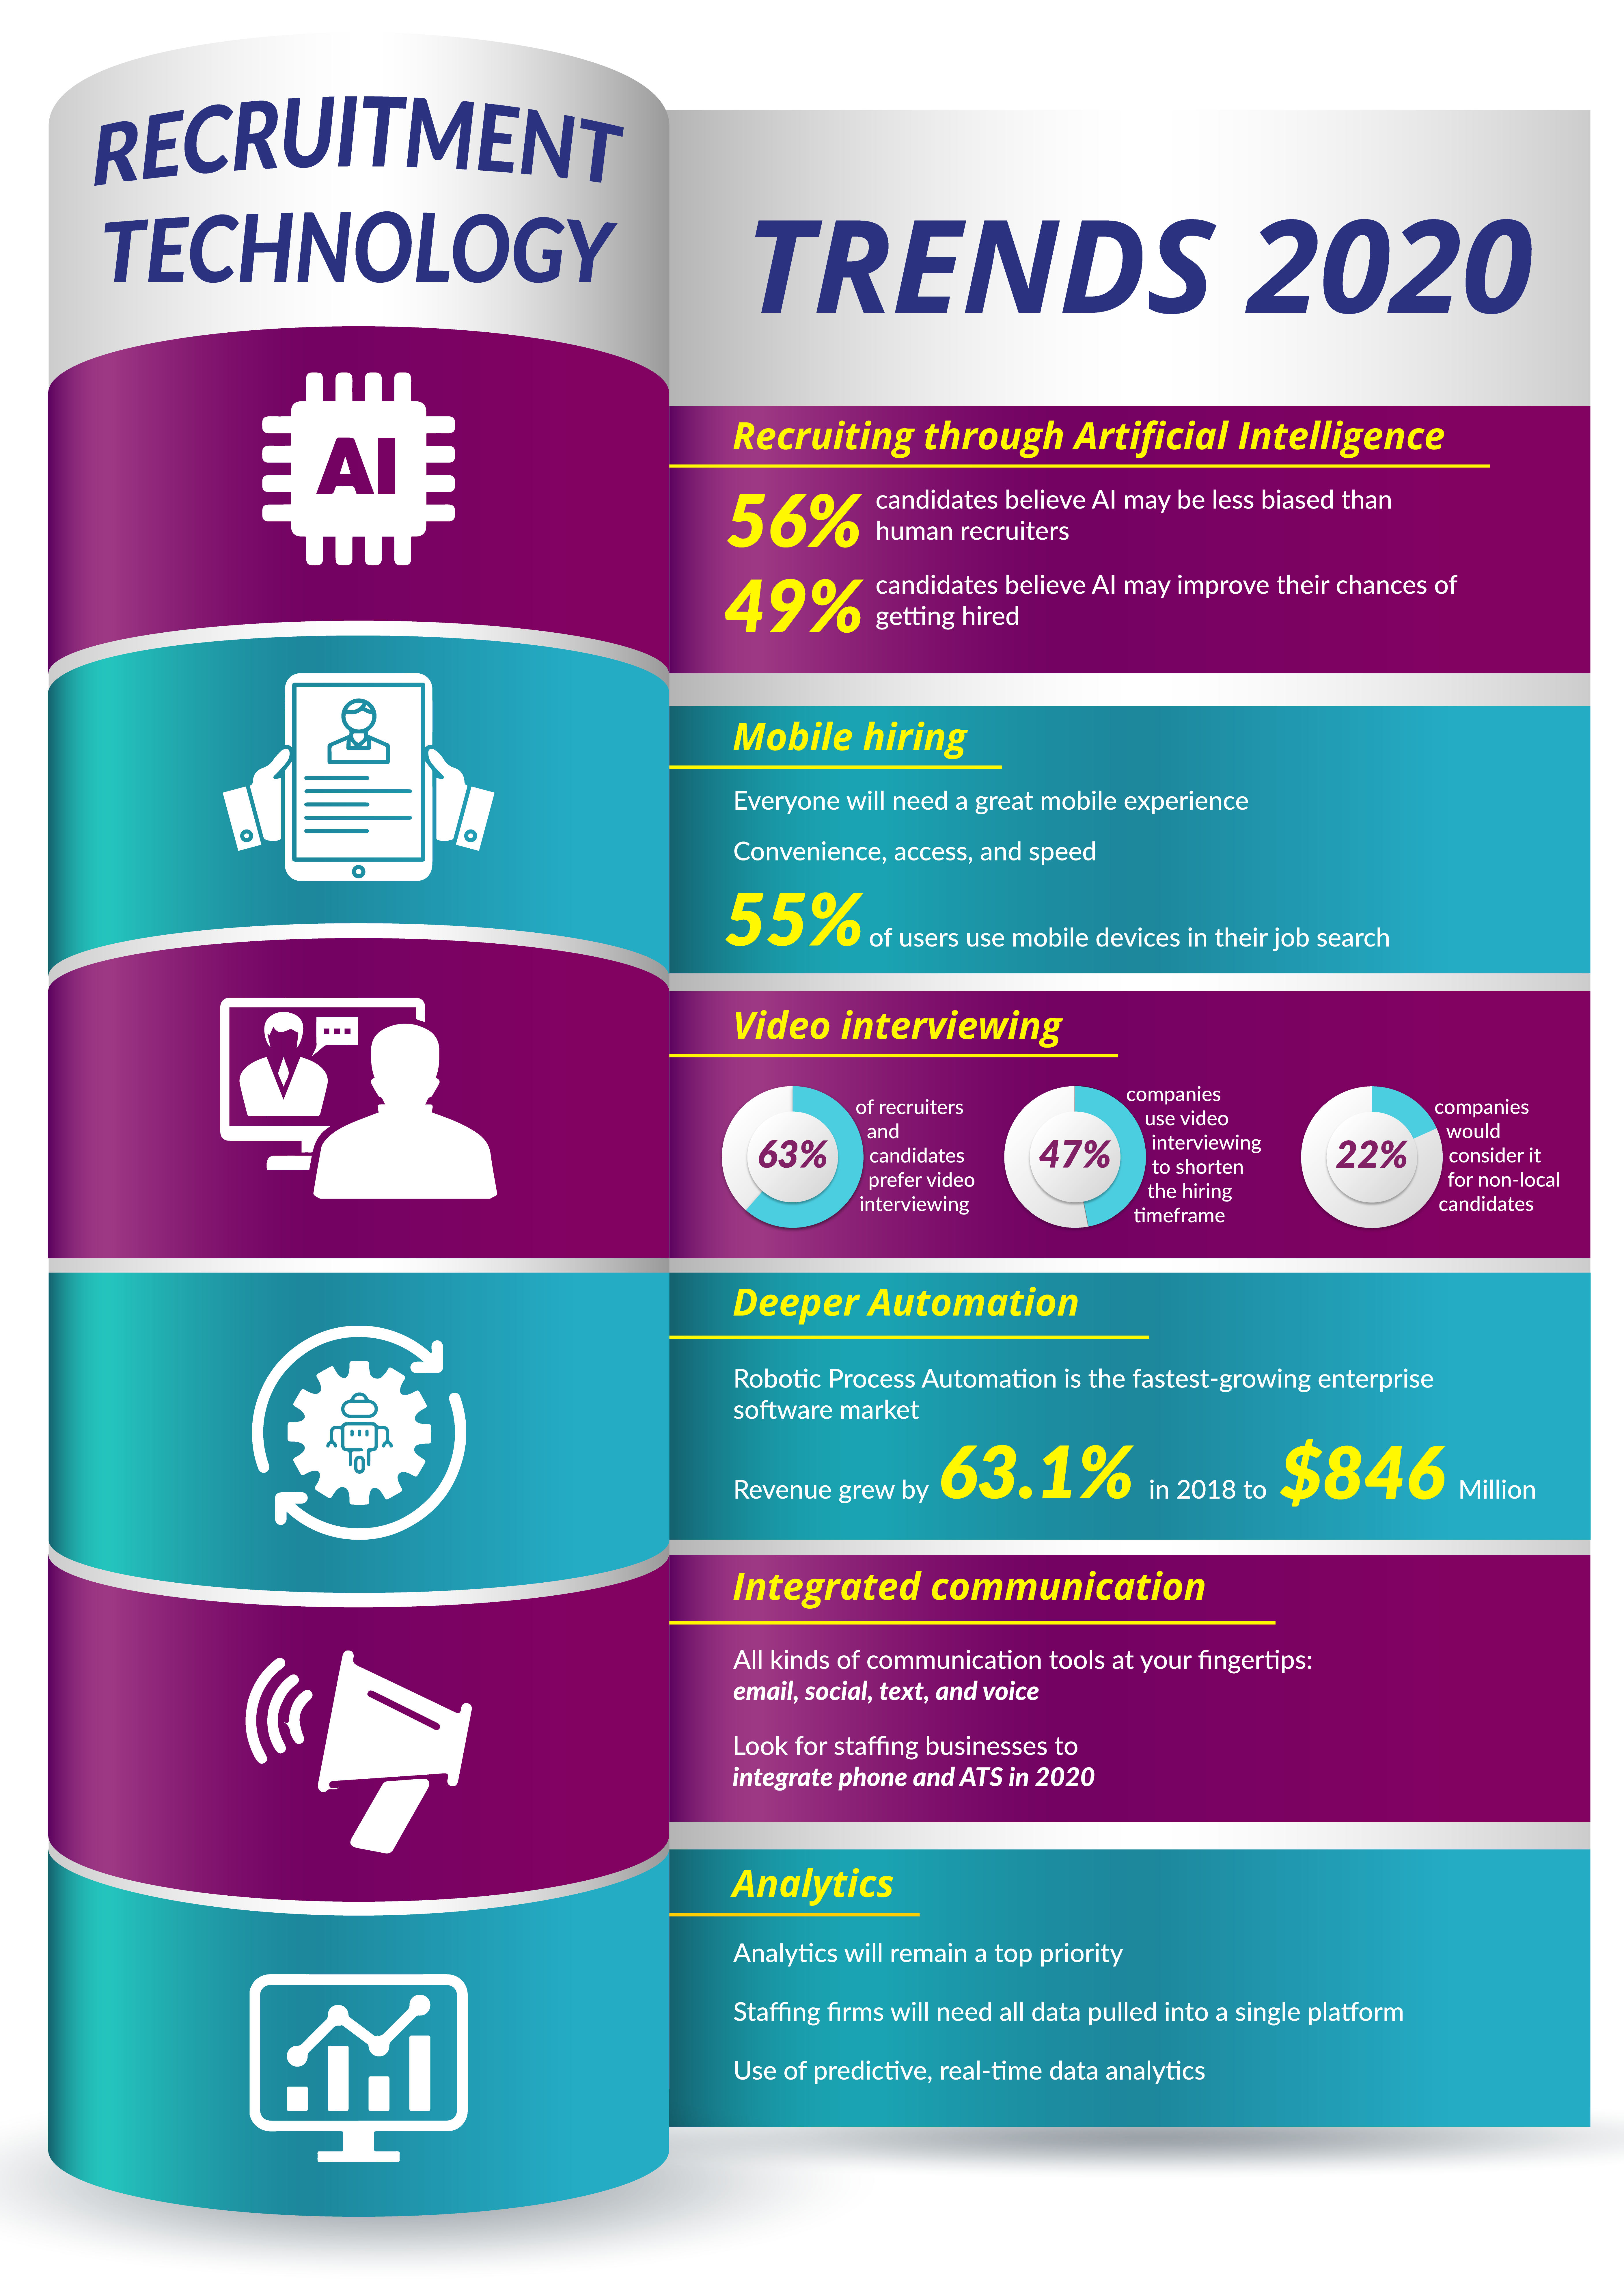 Recruitment Technology Trends 2020 Technology Trends Staffing Company Technology